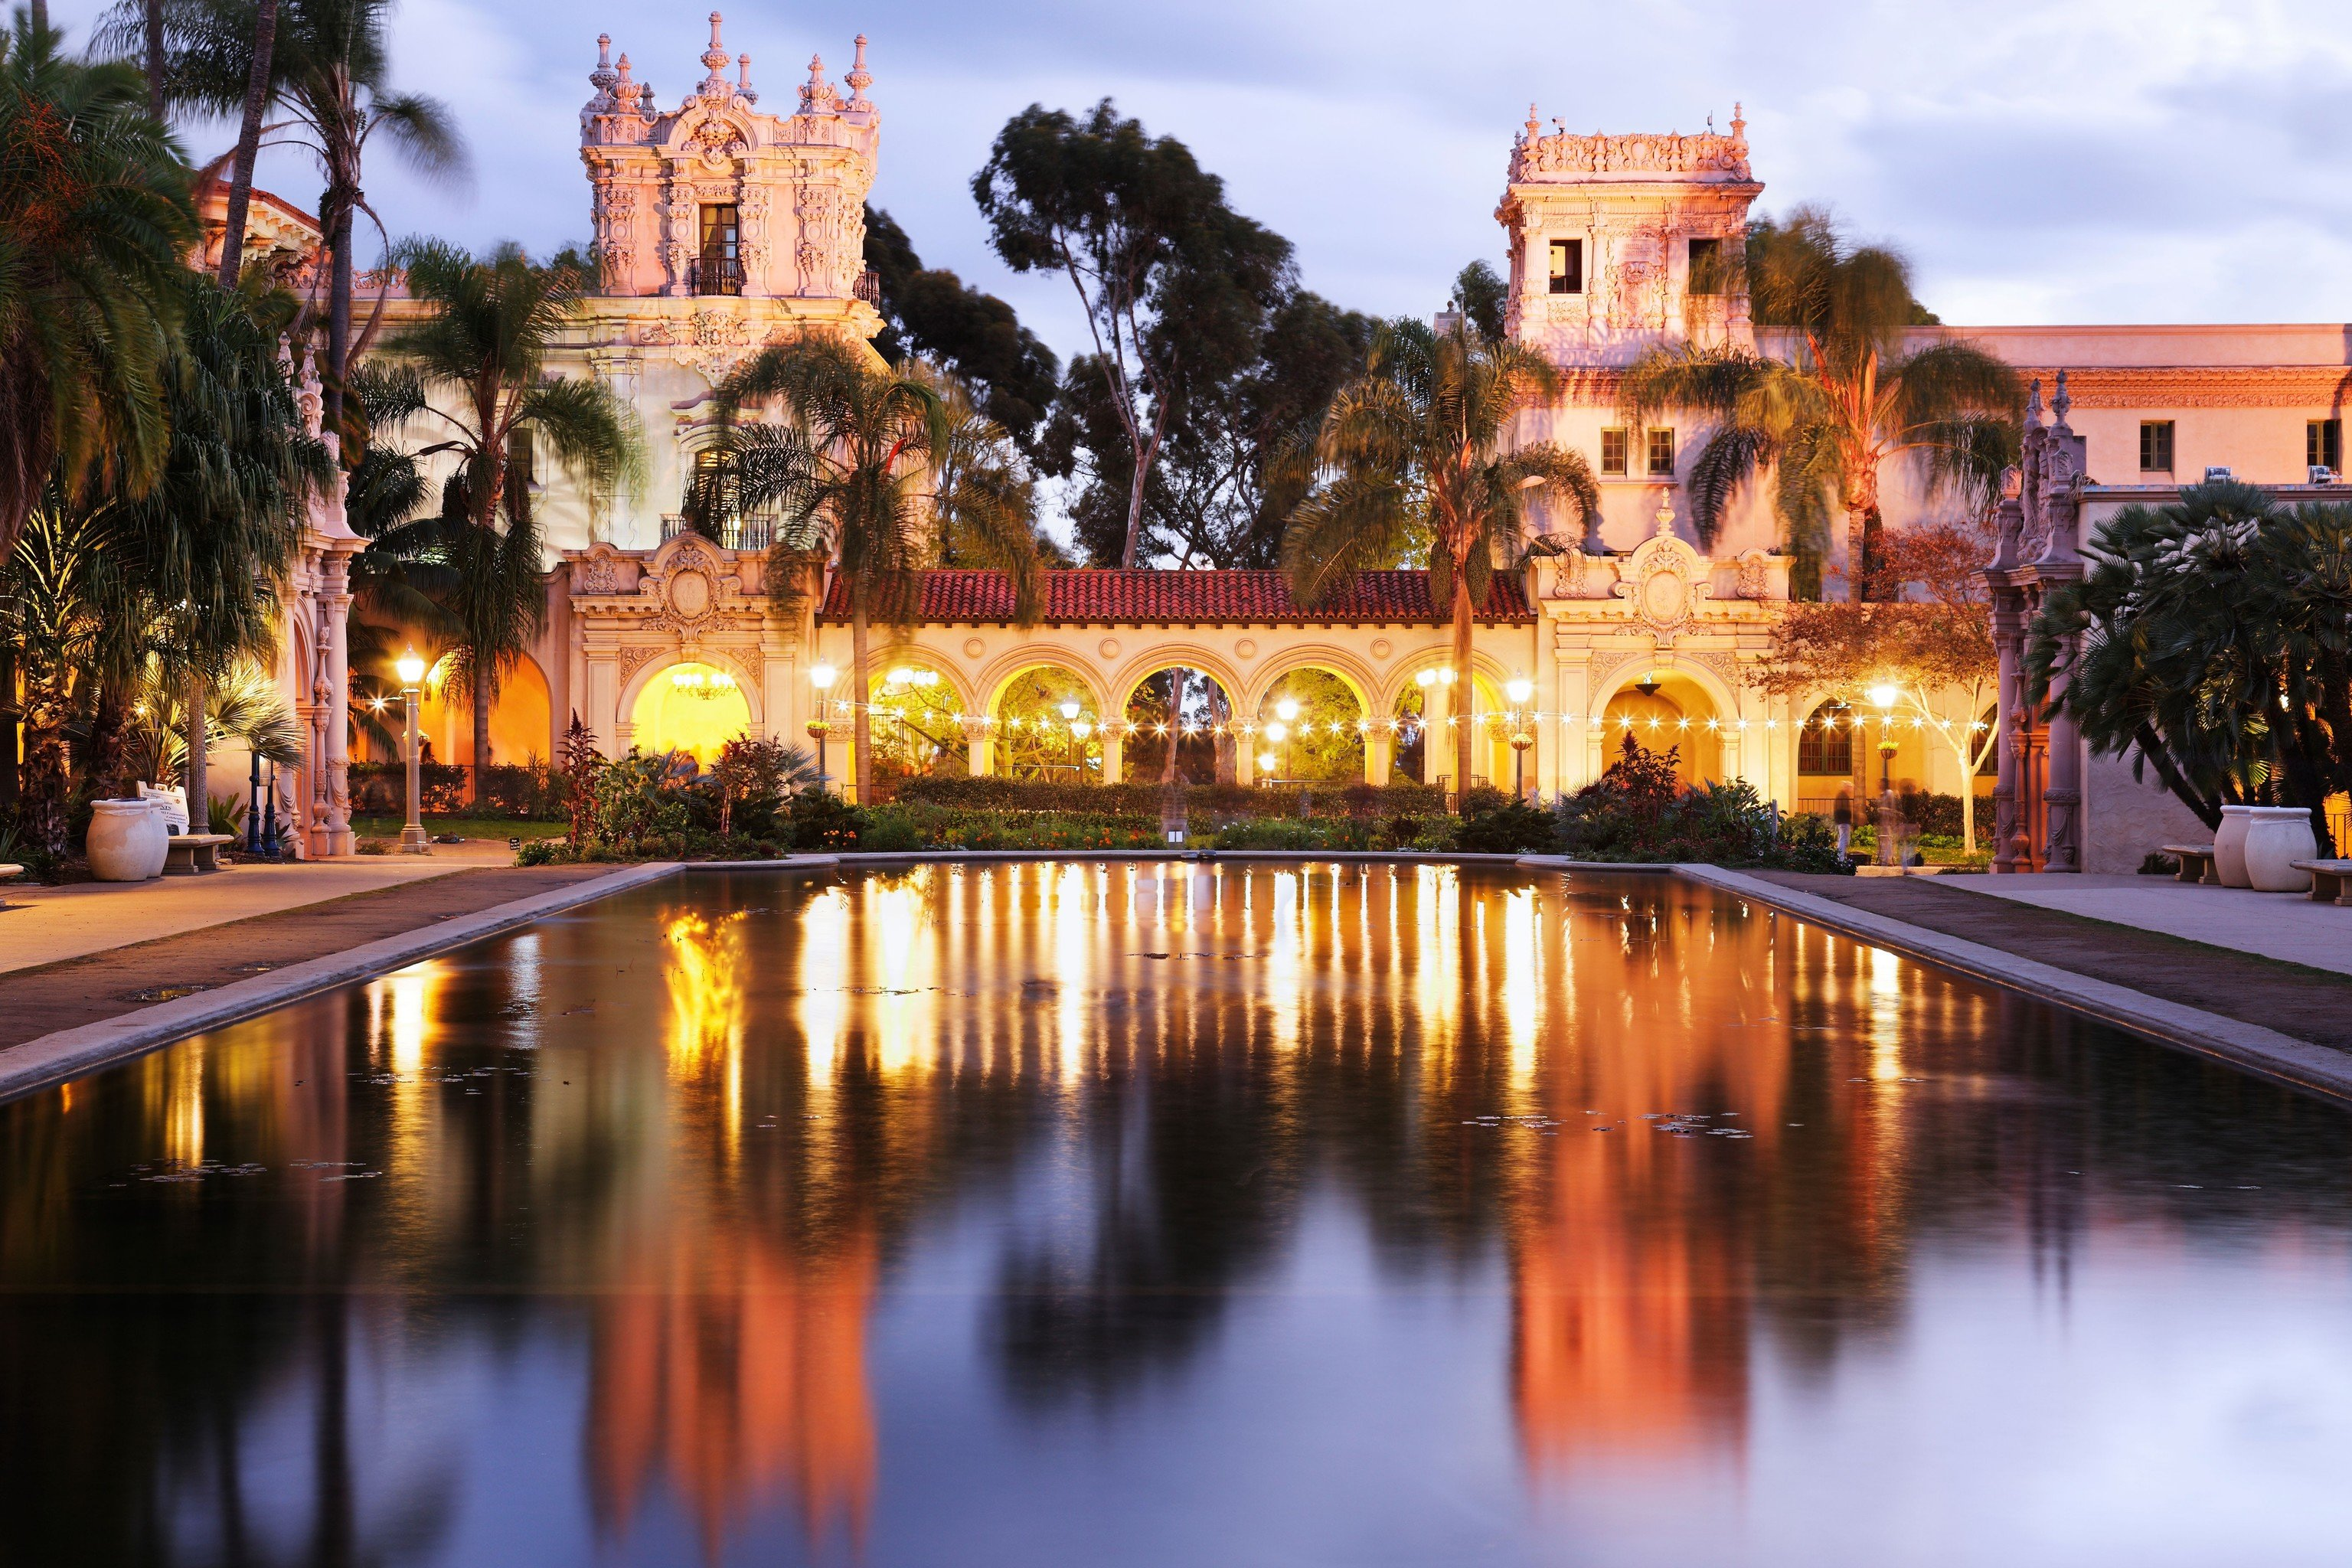 Trip Ideas Weekend Getaways outdoor water sky reflection landmark night evening cityscape plaza tourism waterway palace dusk cathedral